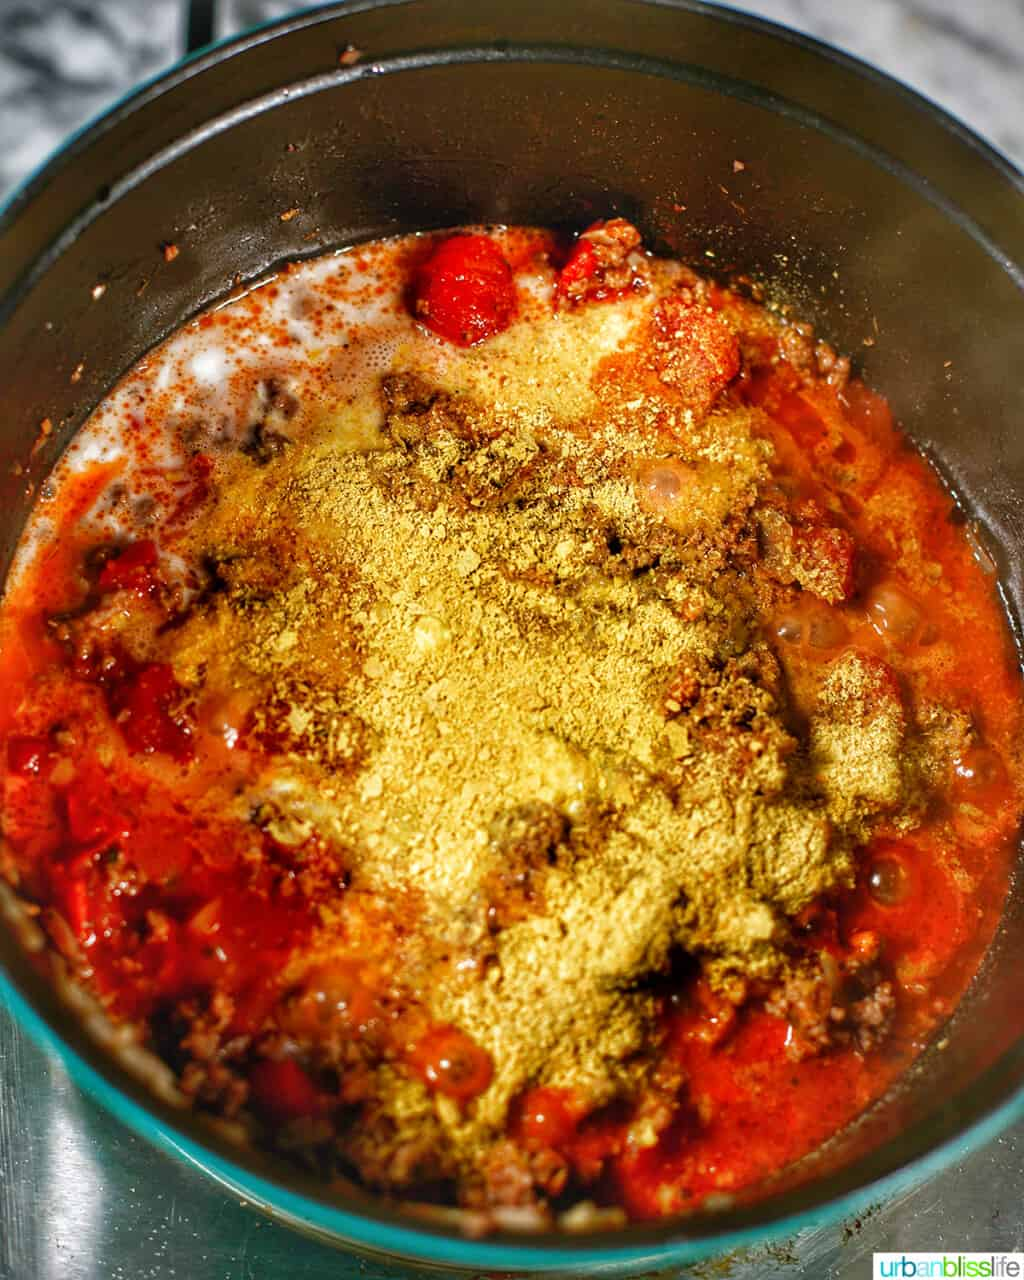 adding nutritional yeast to meat sauce